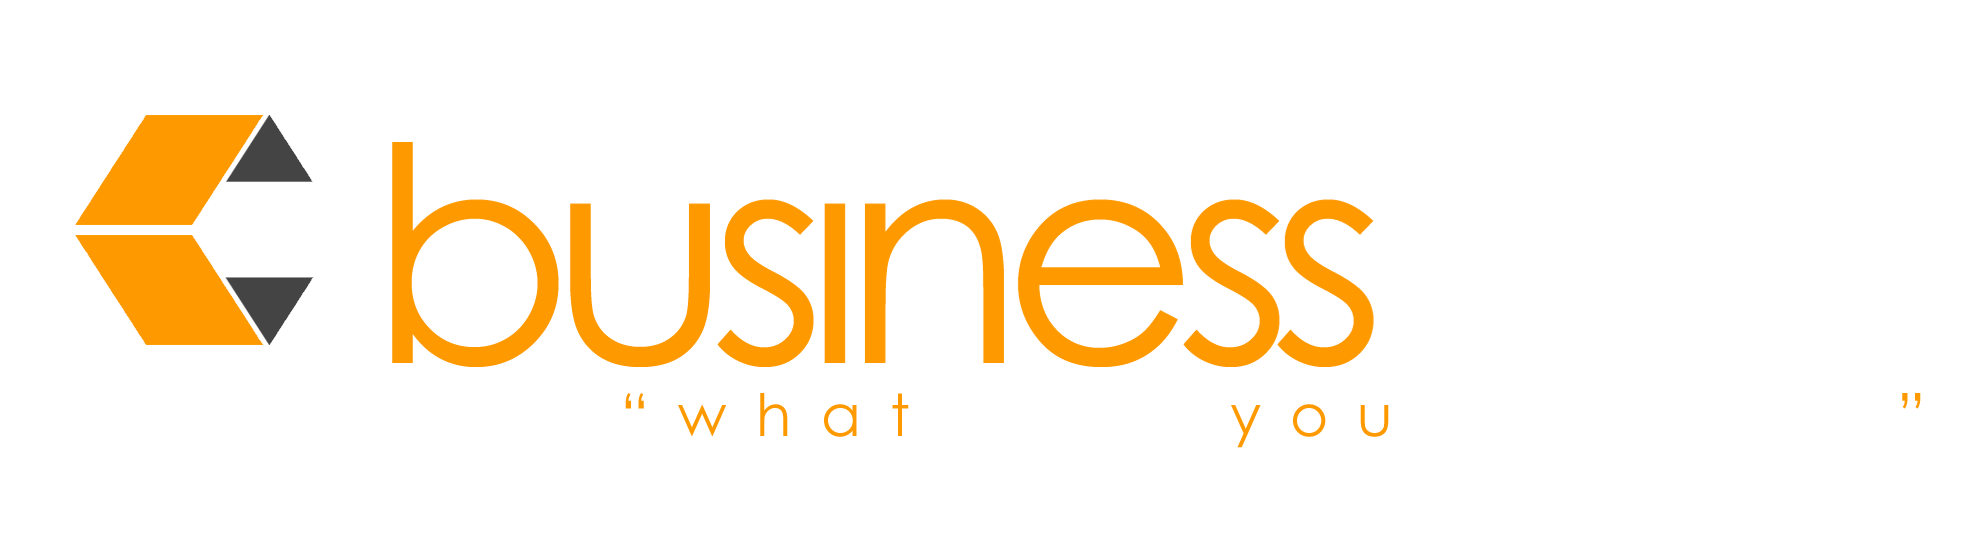 The Small Business Box